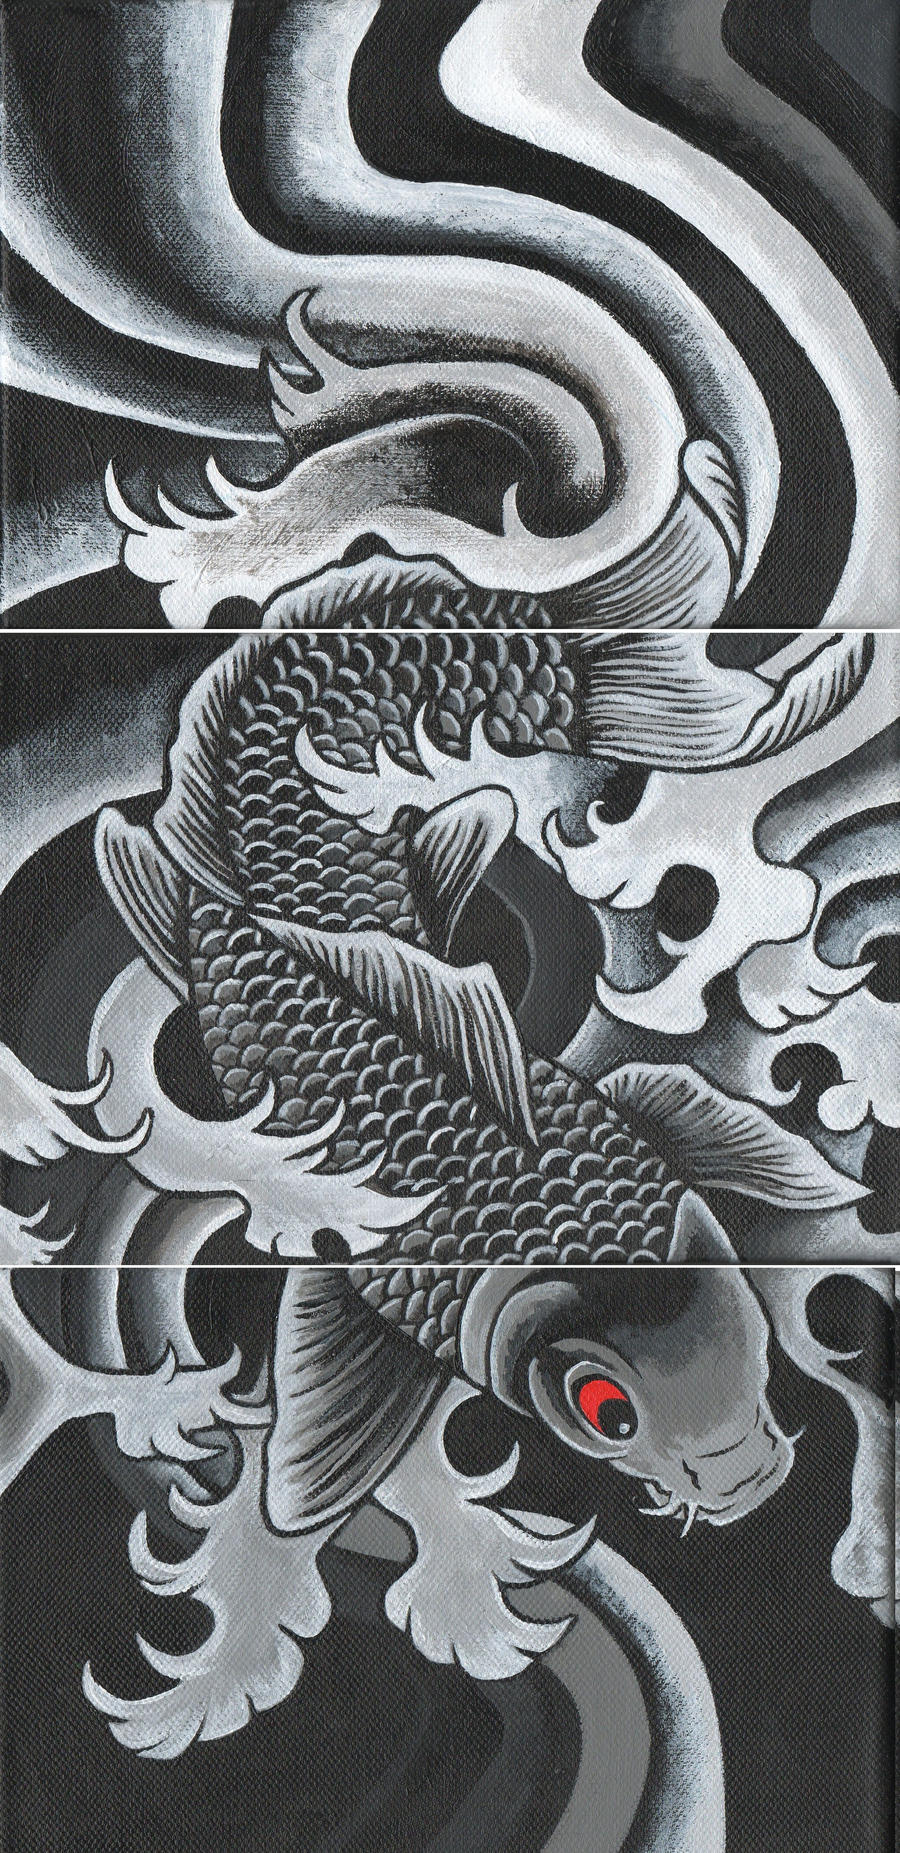 Koi fish painting by dieselboy666 on deviantart for Koi fish artwork